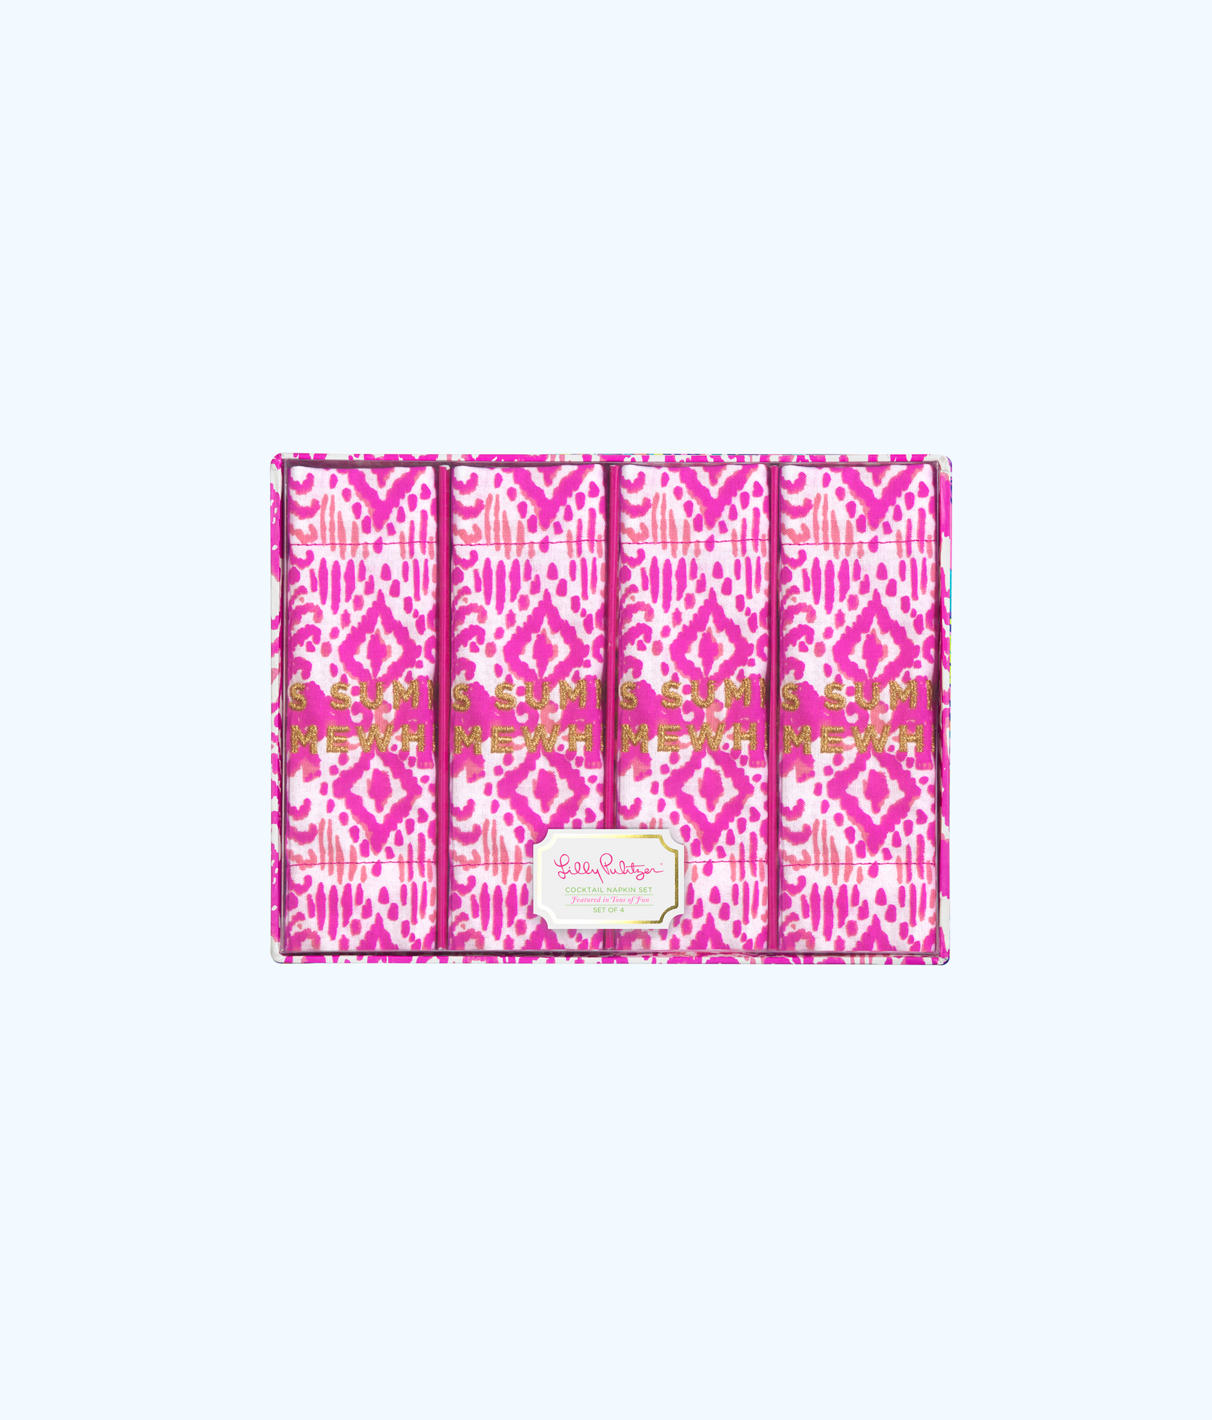 Lilly Pulitzer Lilly Pulitzer Cocktail Napkins